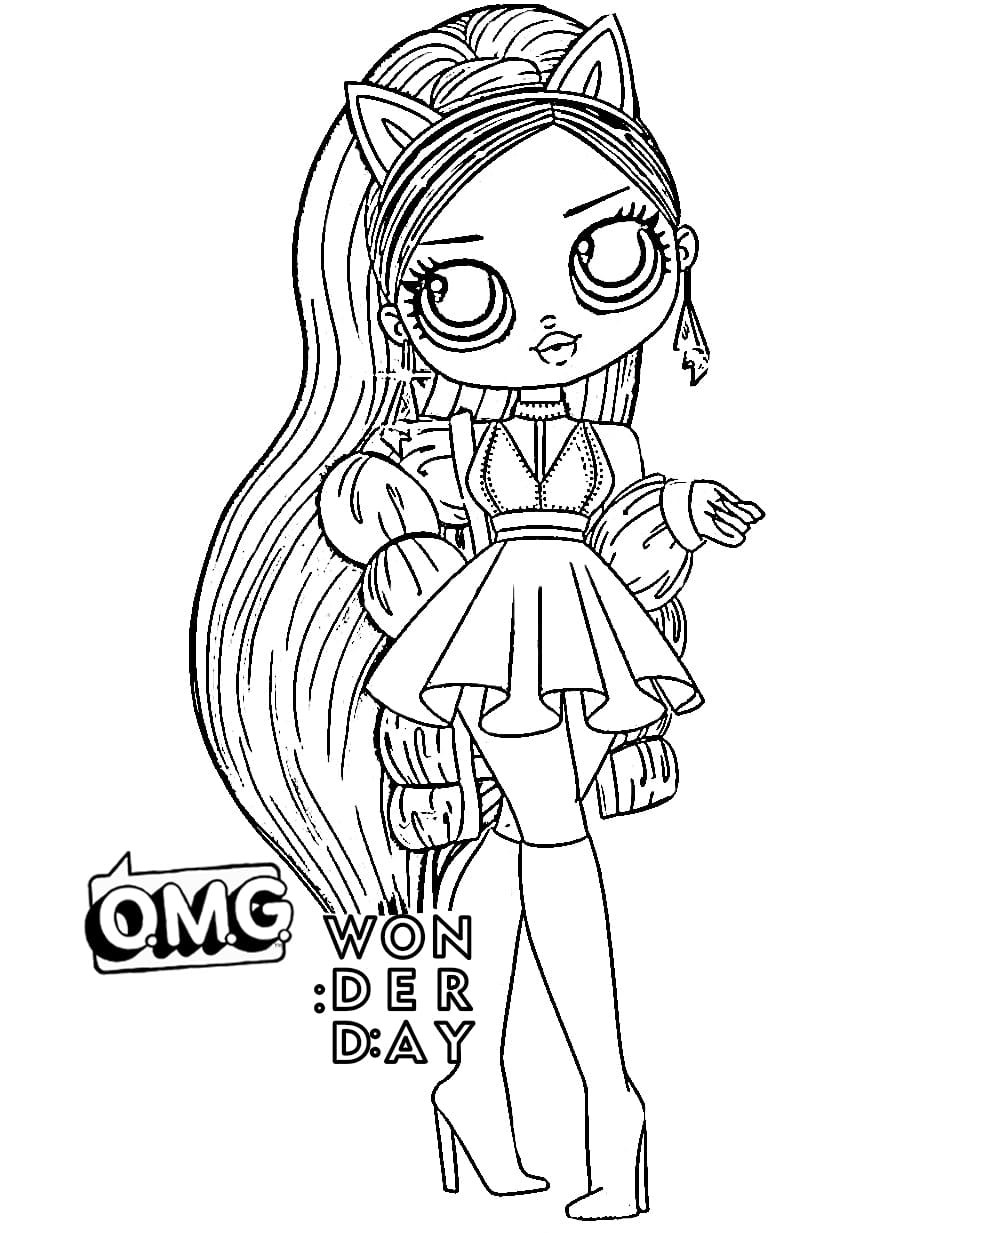 Coloring Colouring Lol Dolls Coloring Dolls Online Free Coloring Pictures Dolls Coloring Book Dolls Also Colorings Coloring Home